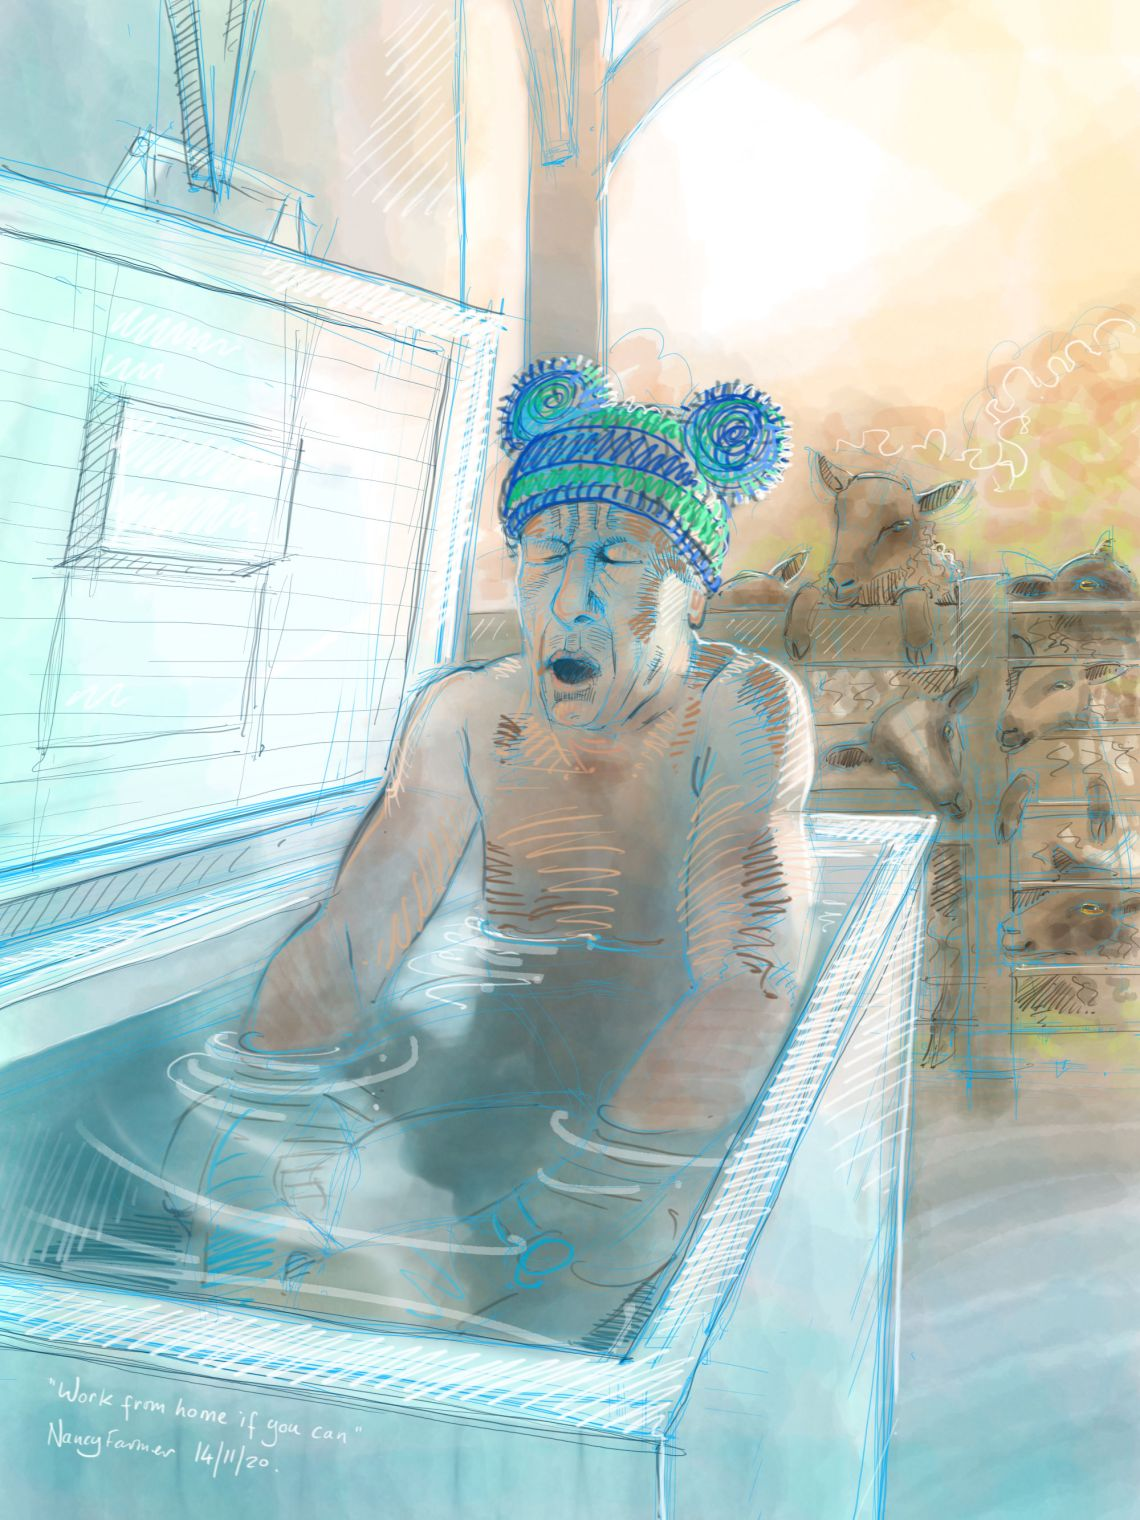 """Work from home if you can"" - digital drawing by Nancy Farmer"